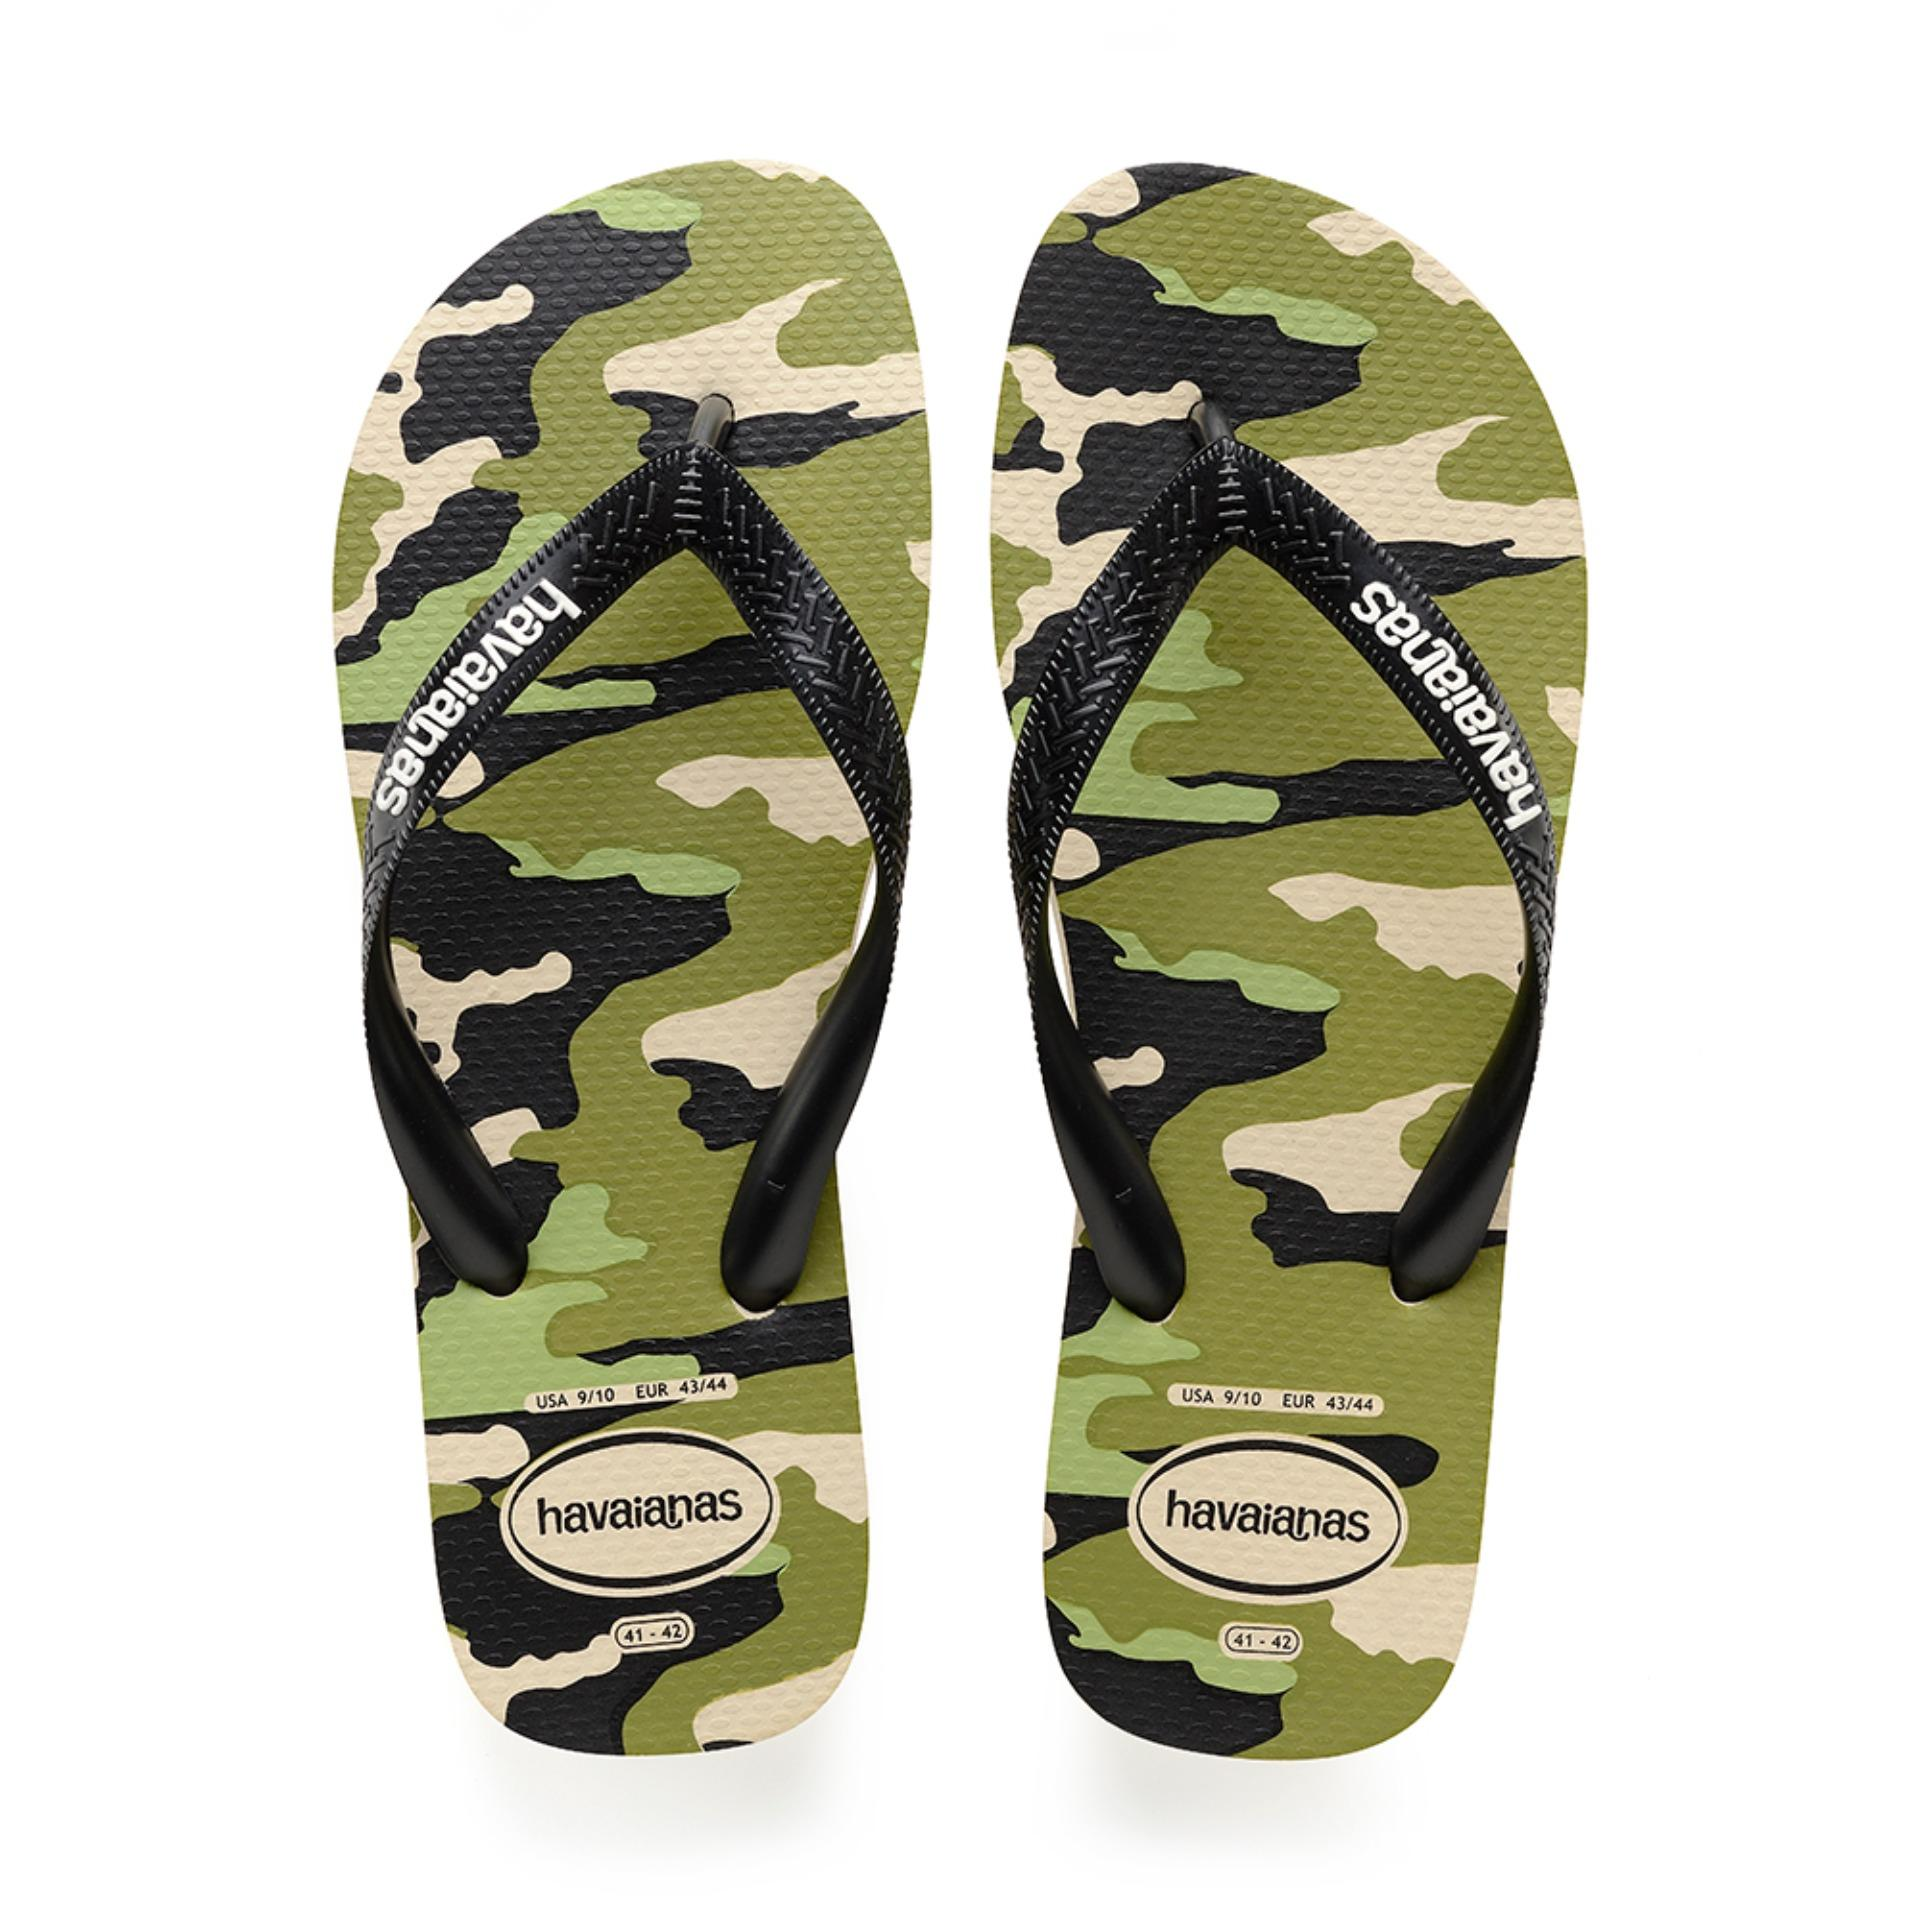 ba196fb873f Havaianas Philippines  Havaianas price list - Slippers   Sandals for ...